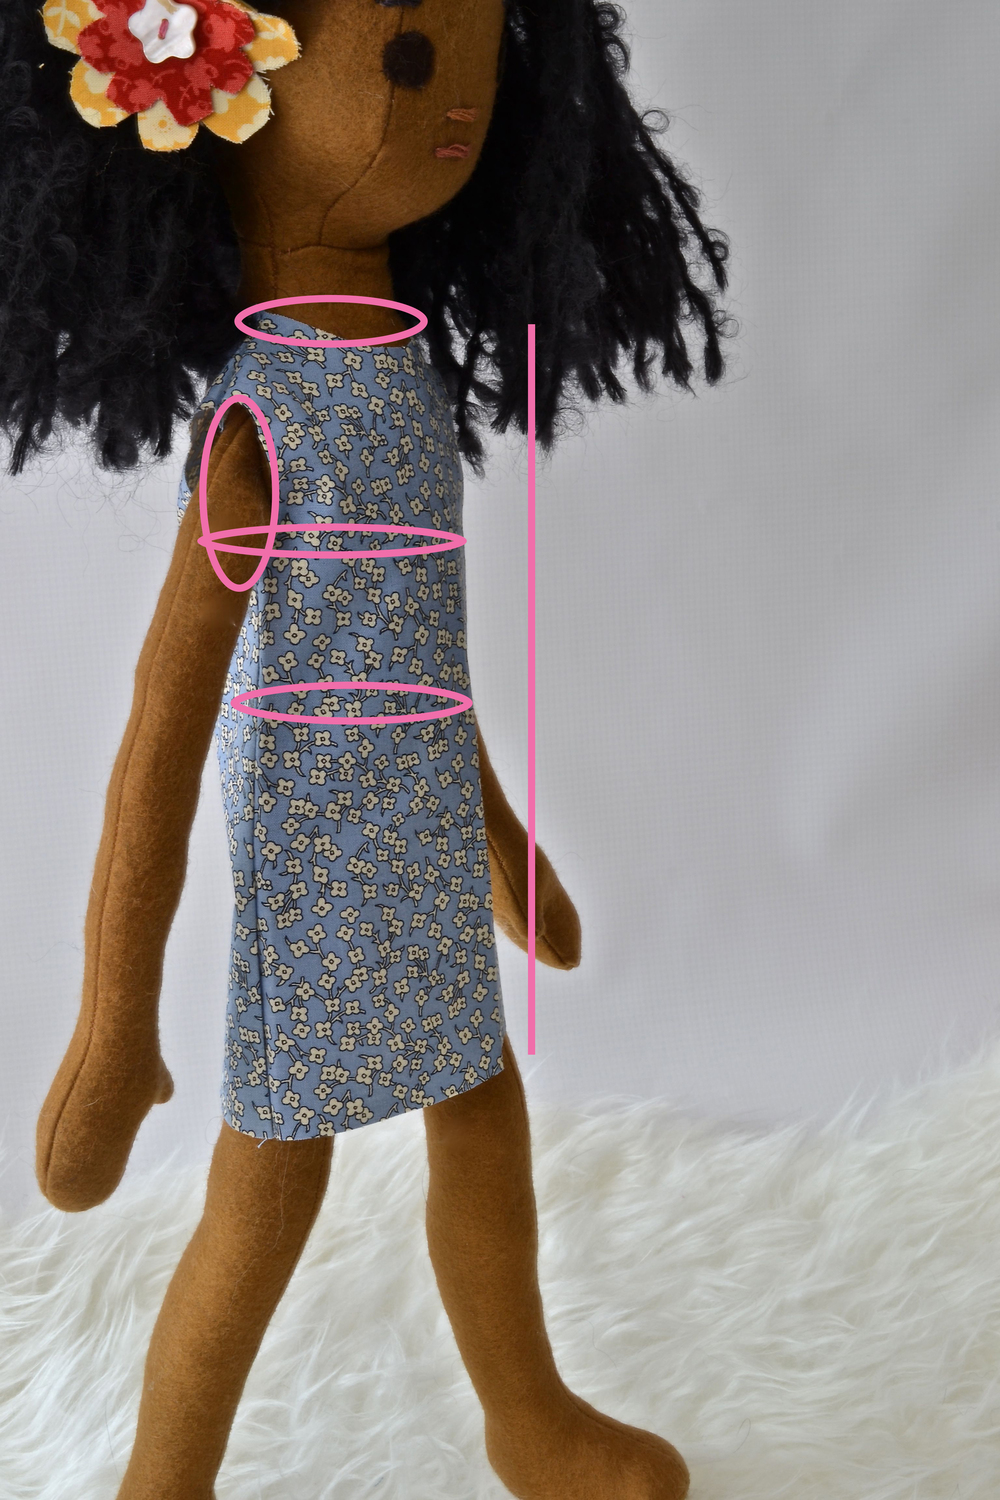 Key areas for adjusting fit in a doll dress